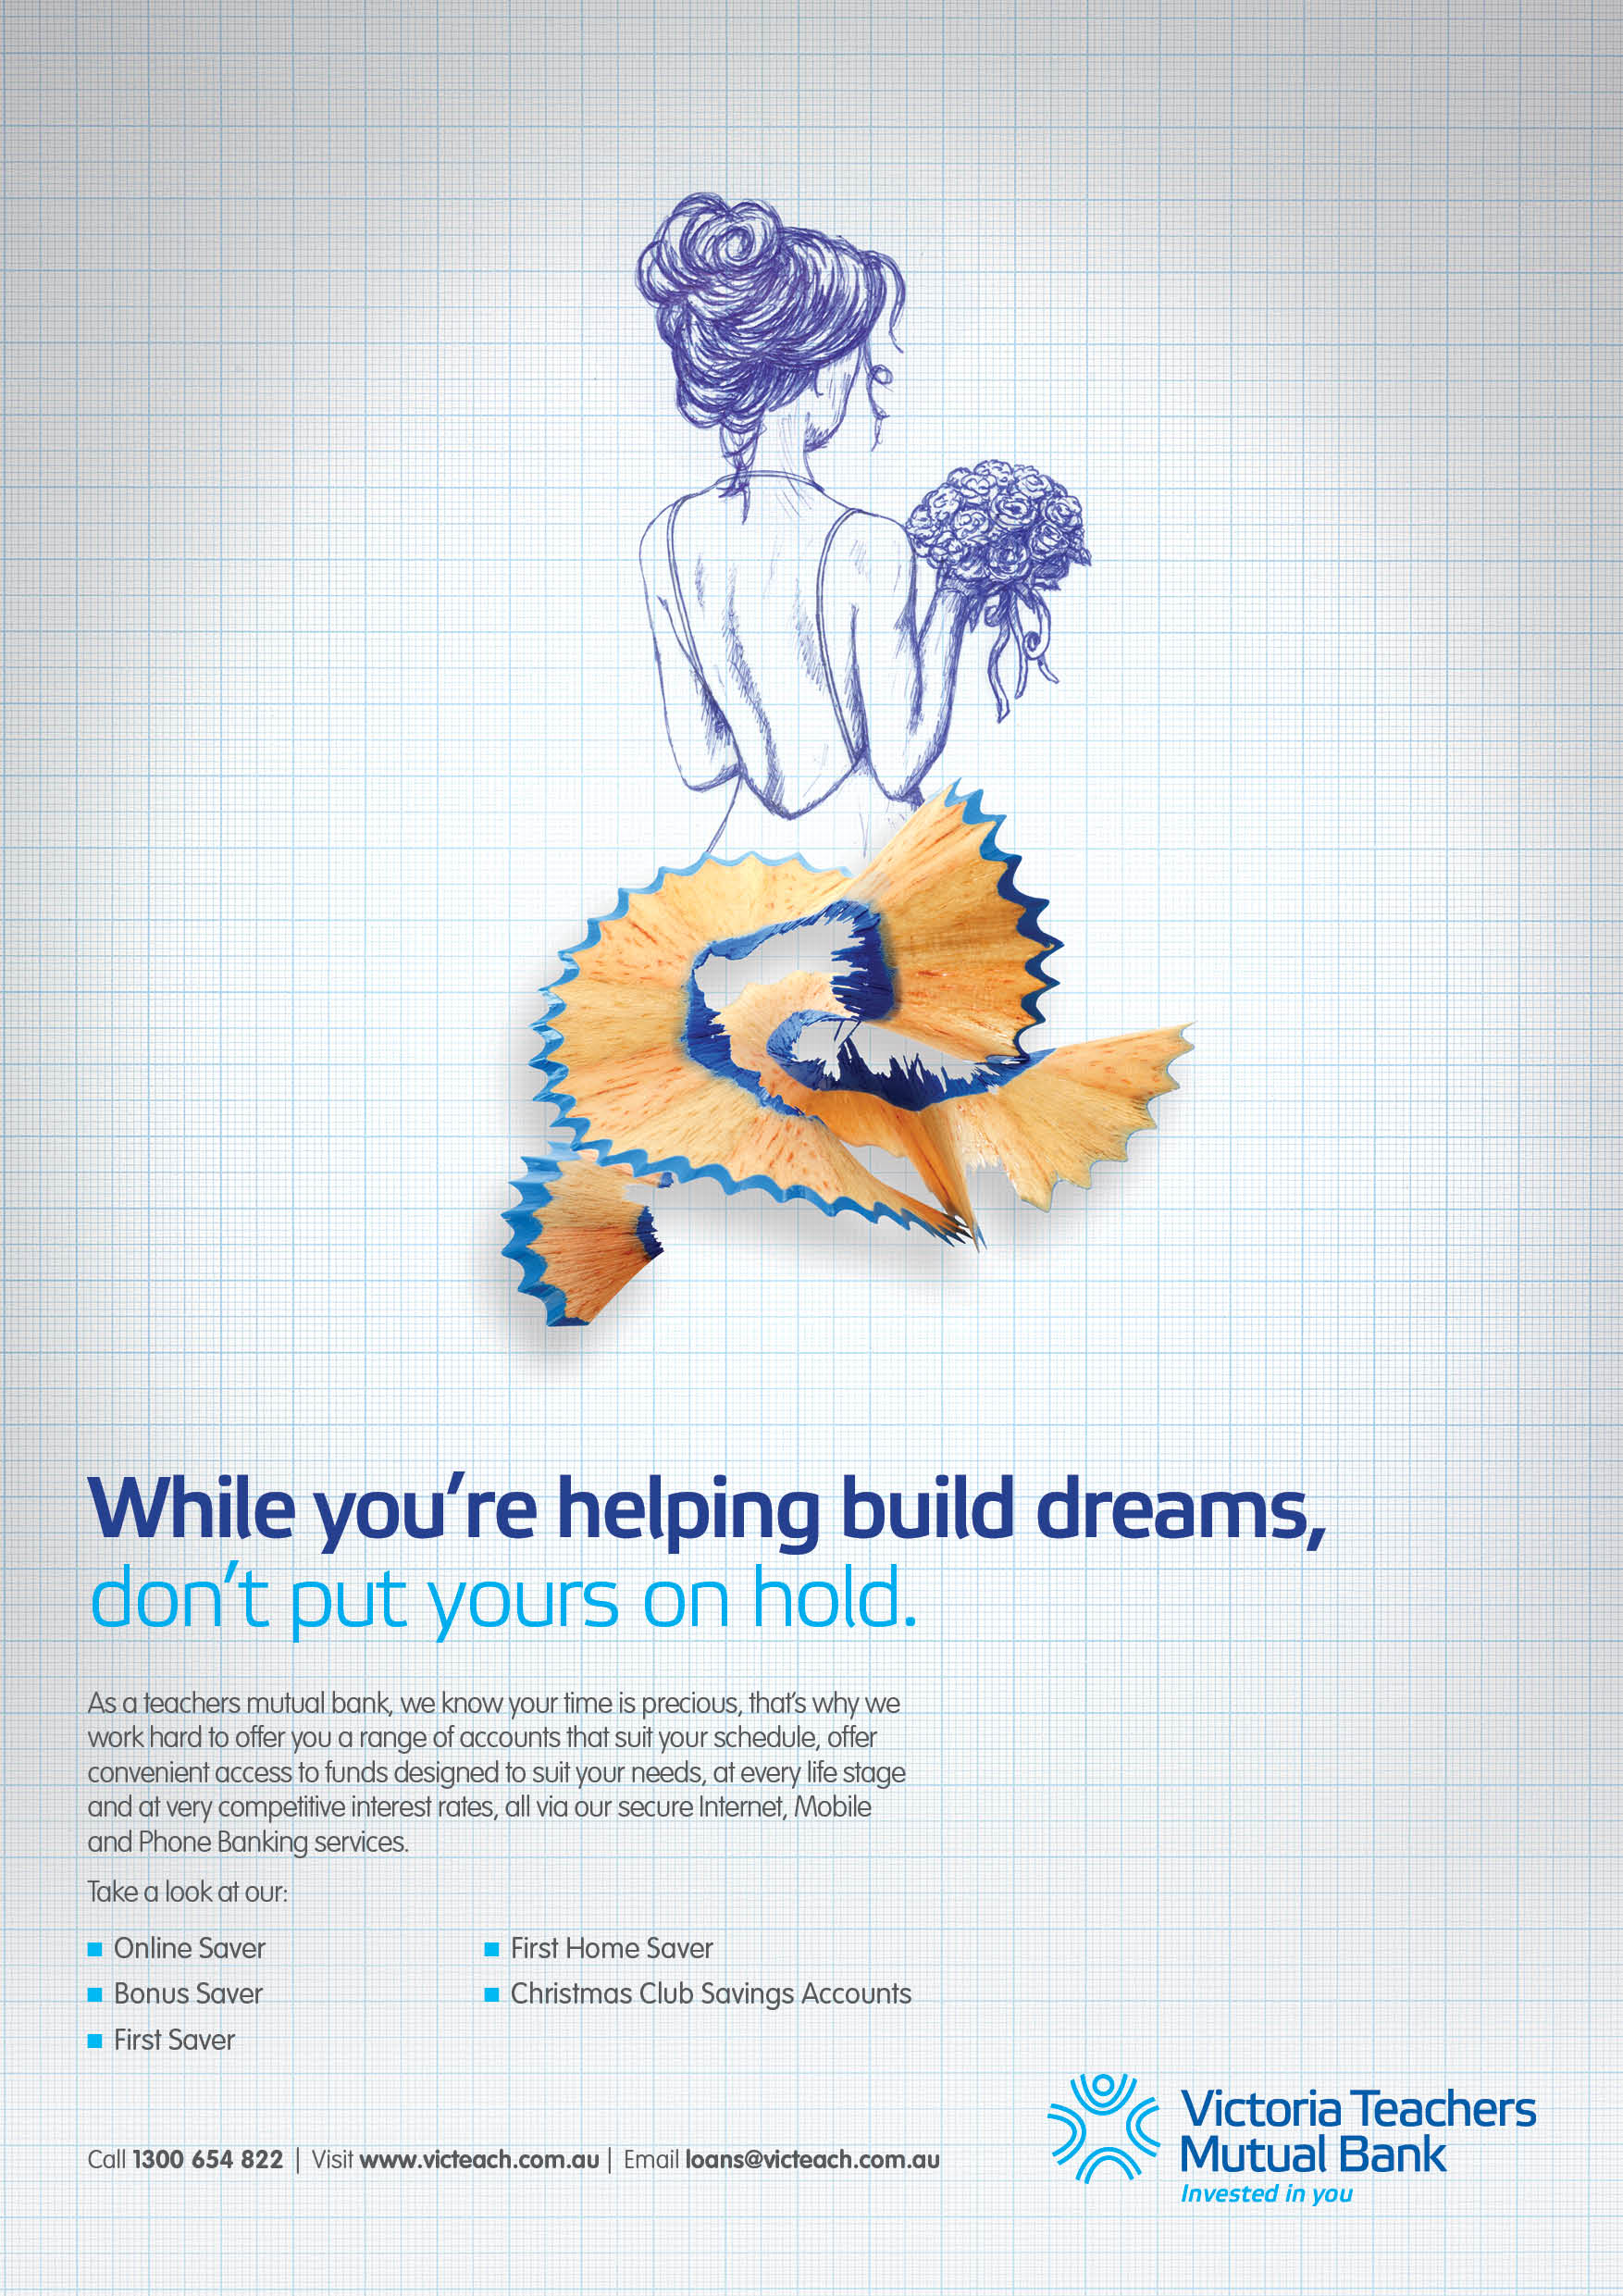 Brush By 10 Feet Tall For Victoria Teachers Mutual Bank Adsarchive Print Ads